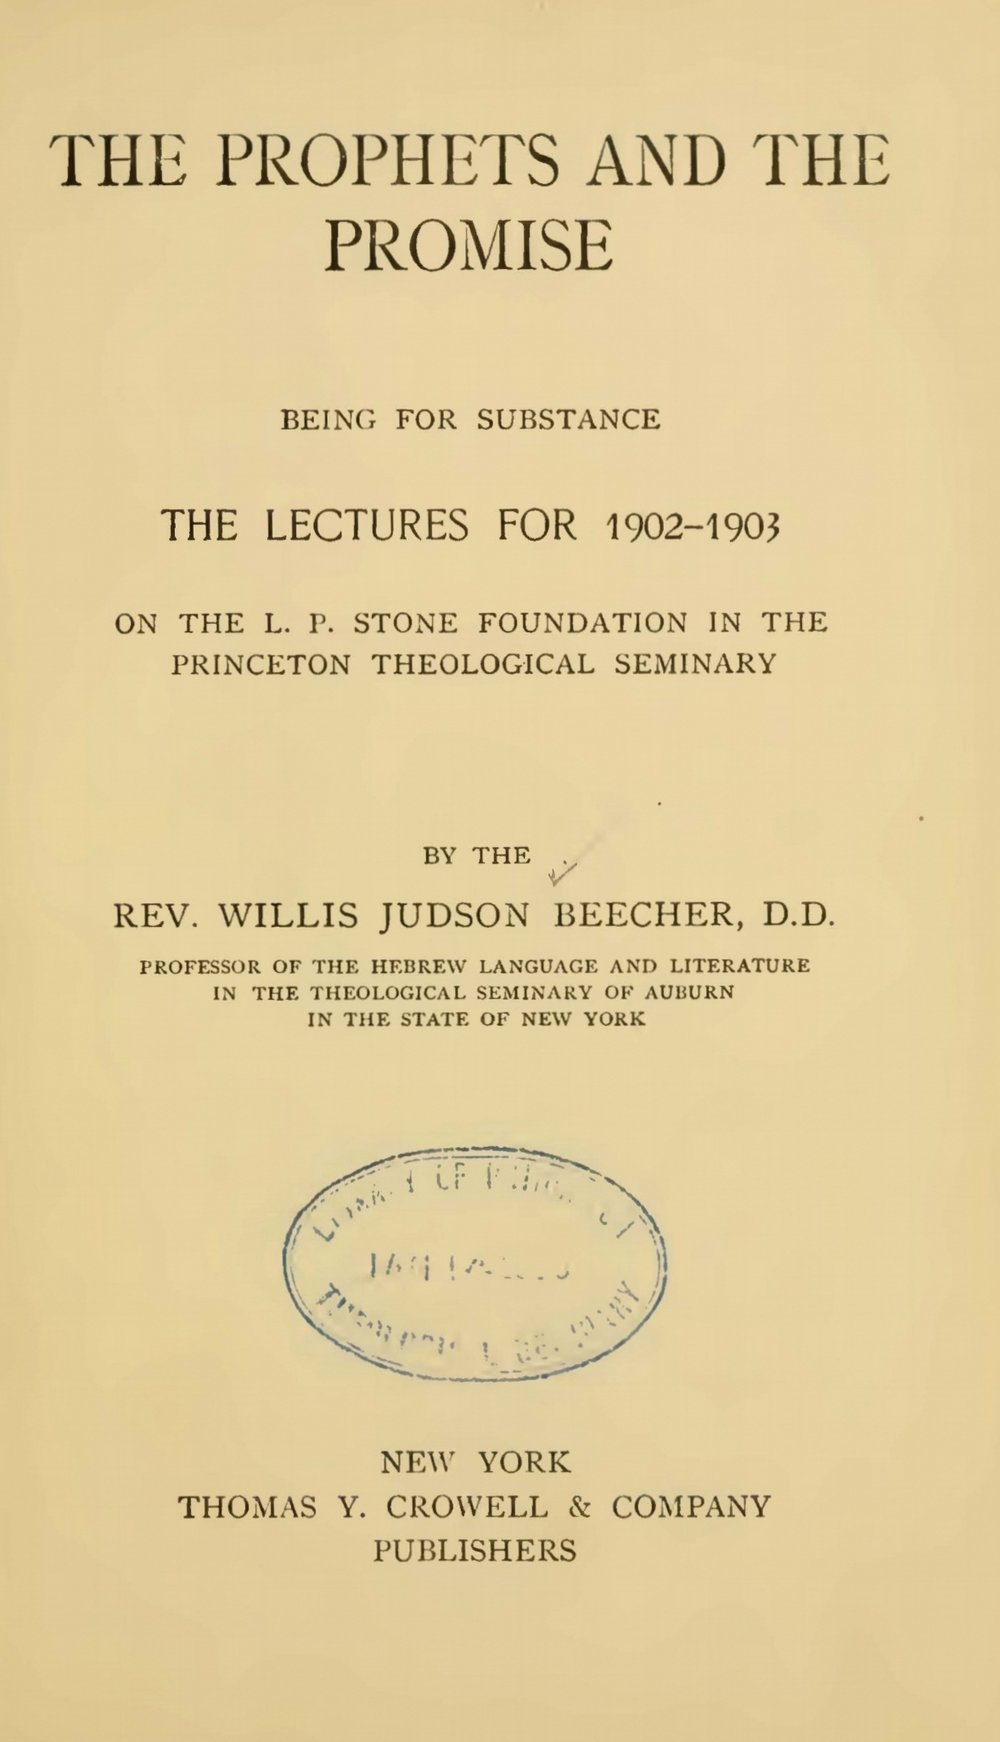 Beecher, Willis Judson, The Prophets and the Promise Title Page.jpg